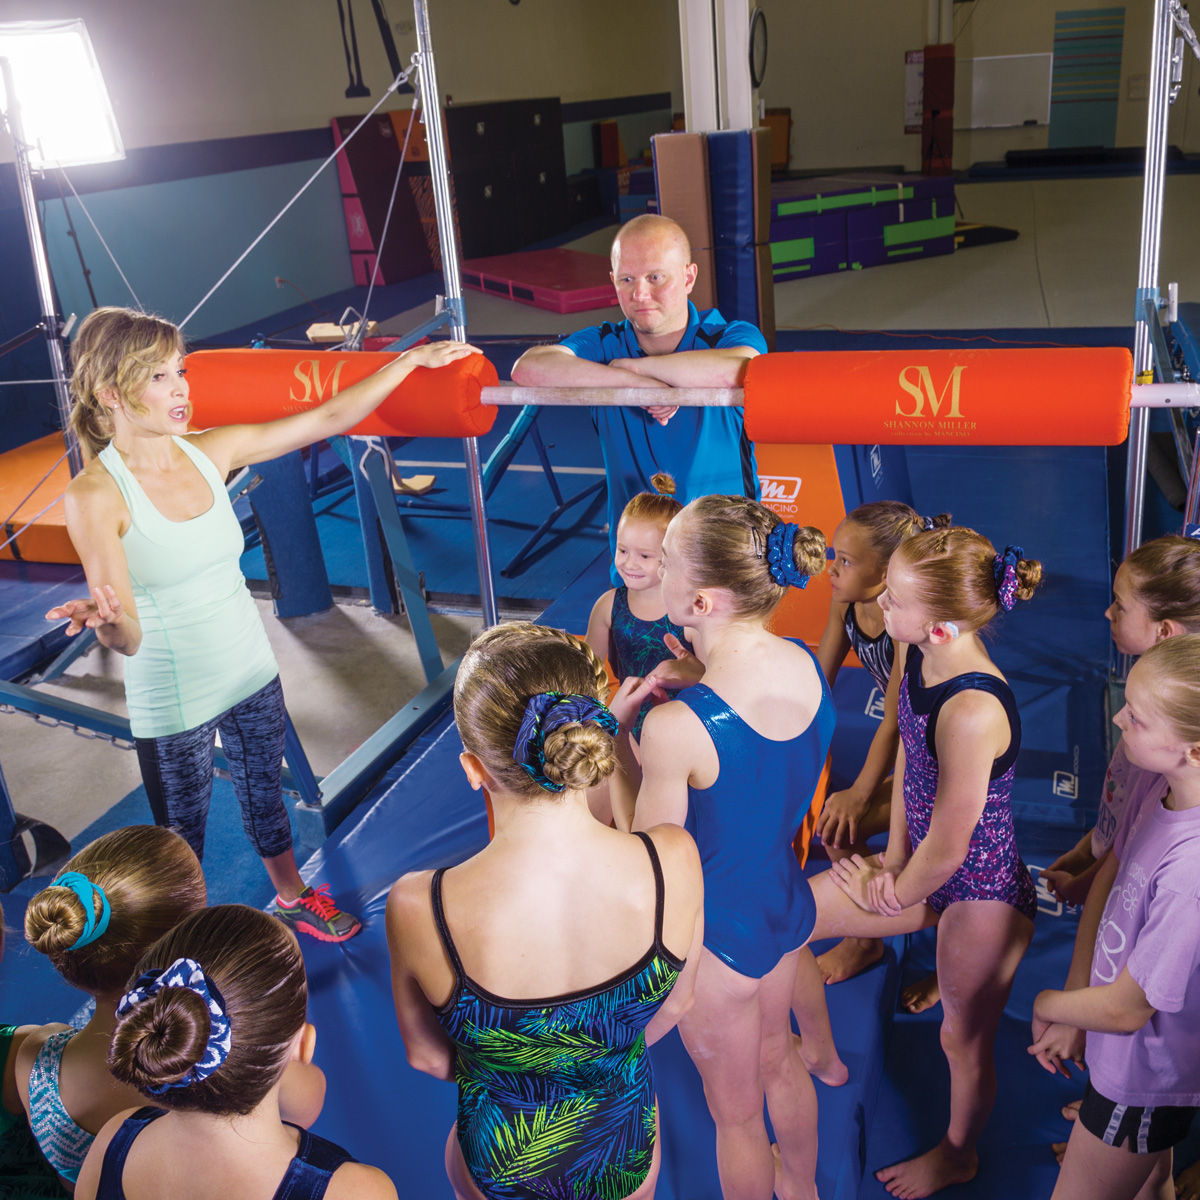 shannon miller instructing gymnasts uneven bar pads